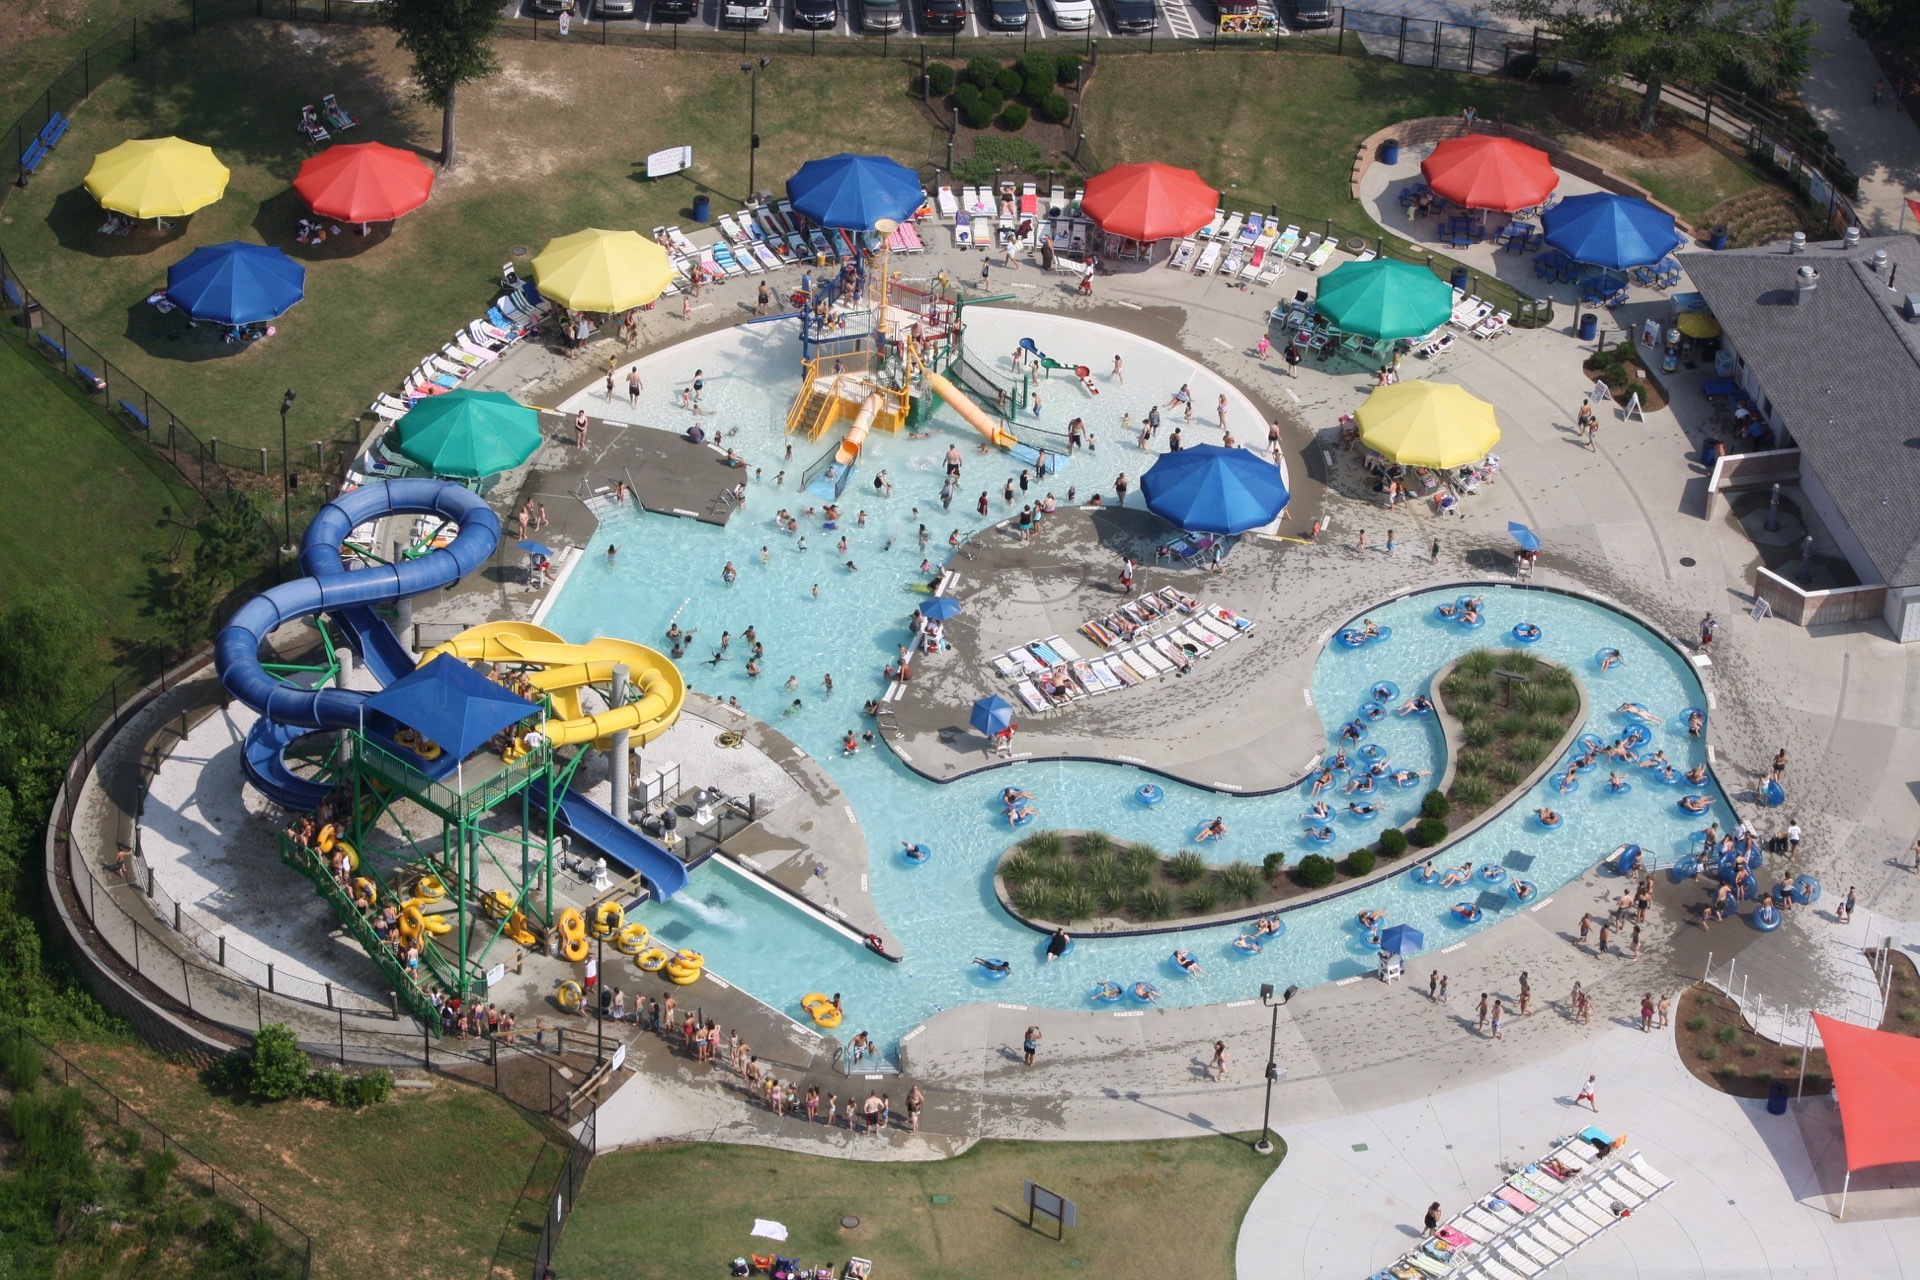 southside park aerial view waterpark